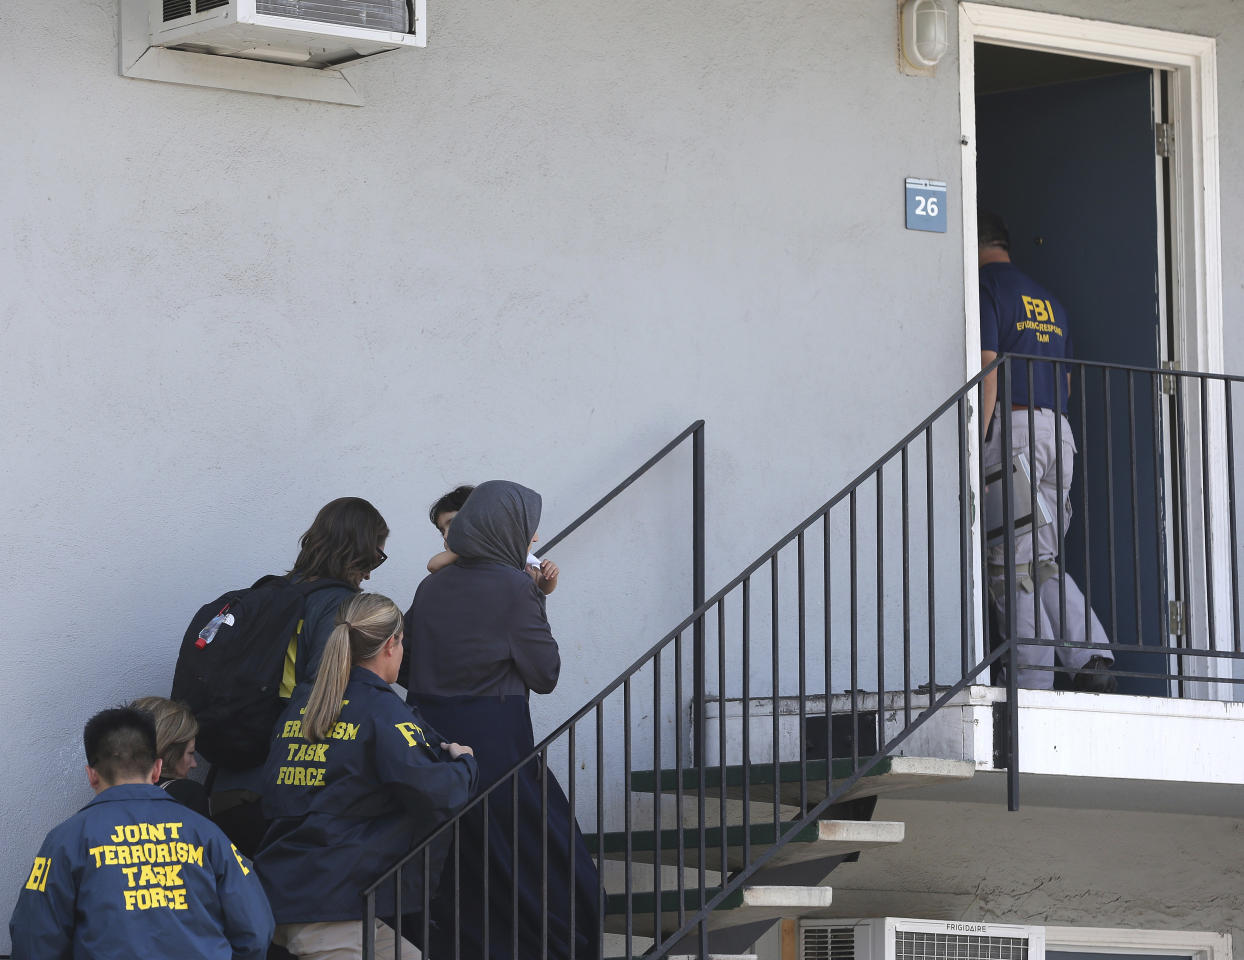 A woman carrying a child is escorted by authorities to an apartment following the arrest of a 45-year-old Iraqi refugee, Omar Ameen, Wednesday, Aug. 15, 2018, in Sacramento, Calif. Ameen was arrested on a warrant alleging that he killed an Iraqi policeman in 2014 while serving with the Islamic State terror organization. (AP Photo/Rich Pedroncelli)